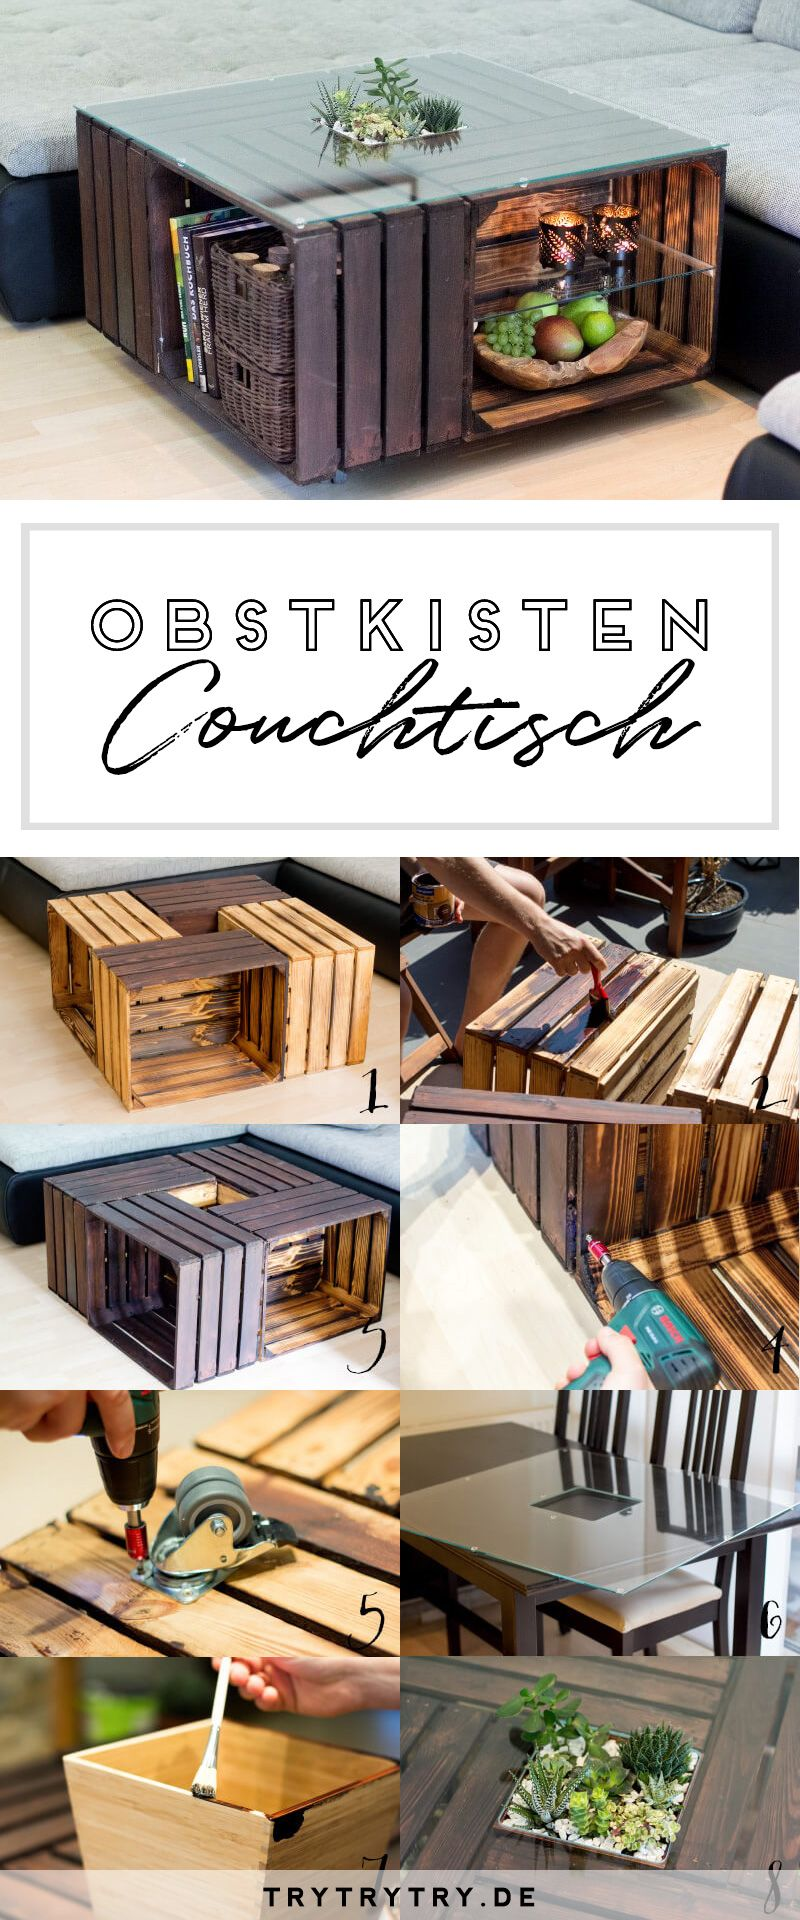 Couchtisch Upcycling Diy Upcycling Couchtisch Aus Obstkisten Diy Upcycling Coutisch